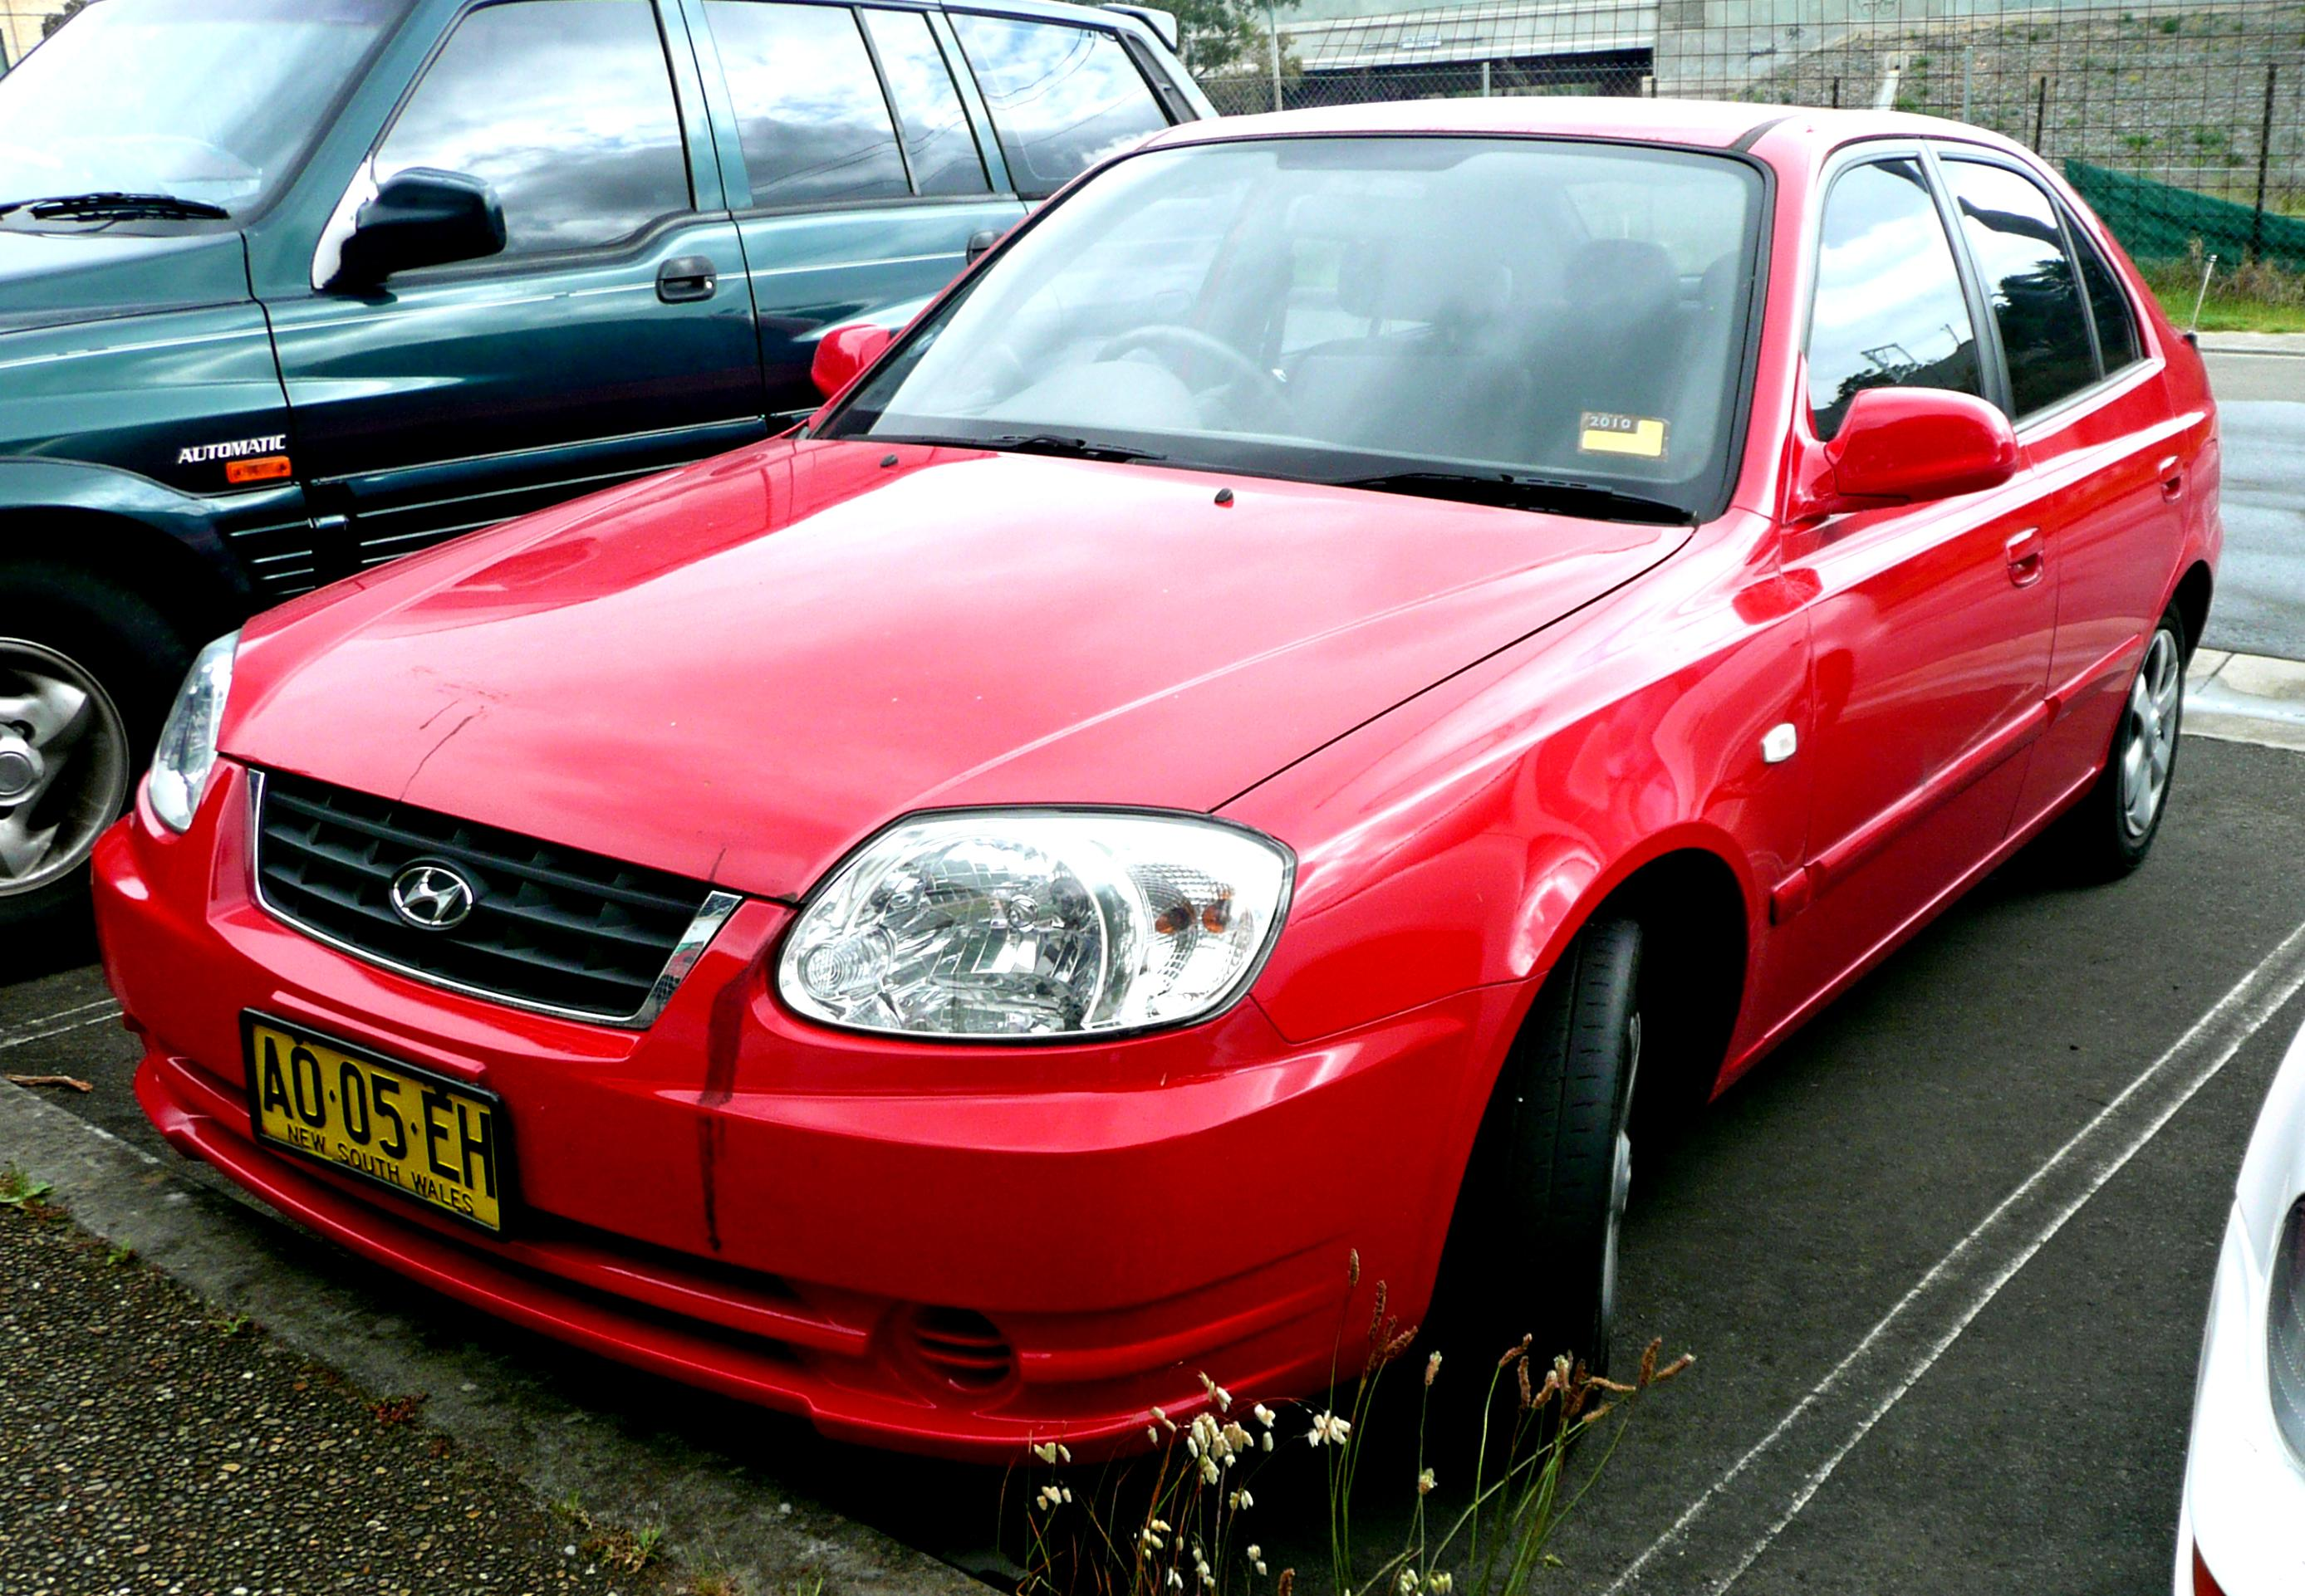 Hyundai Accent 4 Doors 2003 on MotoImg